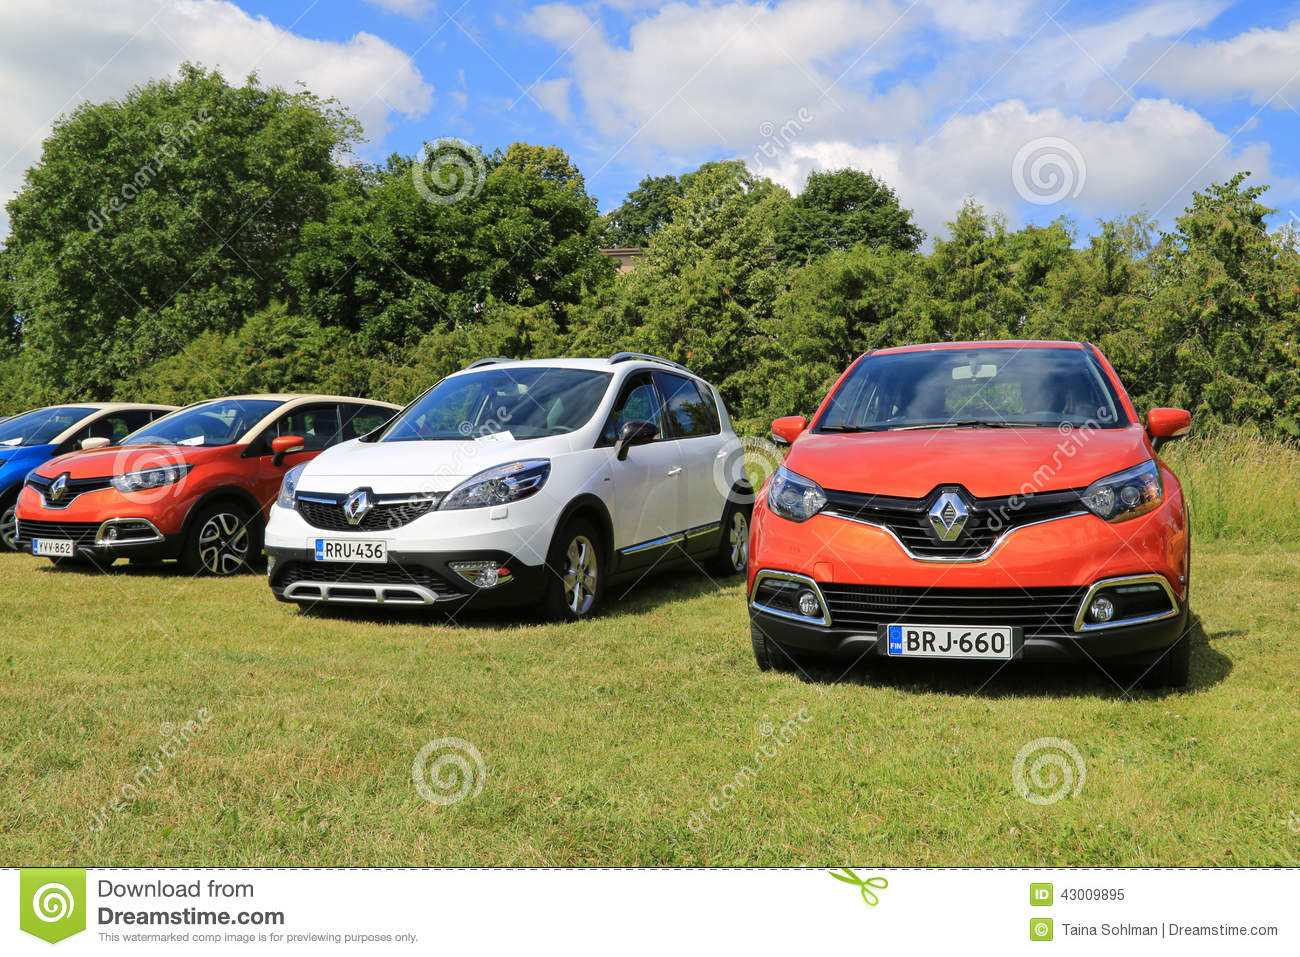 new renault captur and scenic xmod cars on display. Black Bedroom Furniture Sets. Home Design Ideas